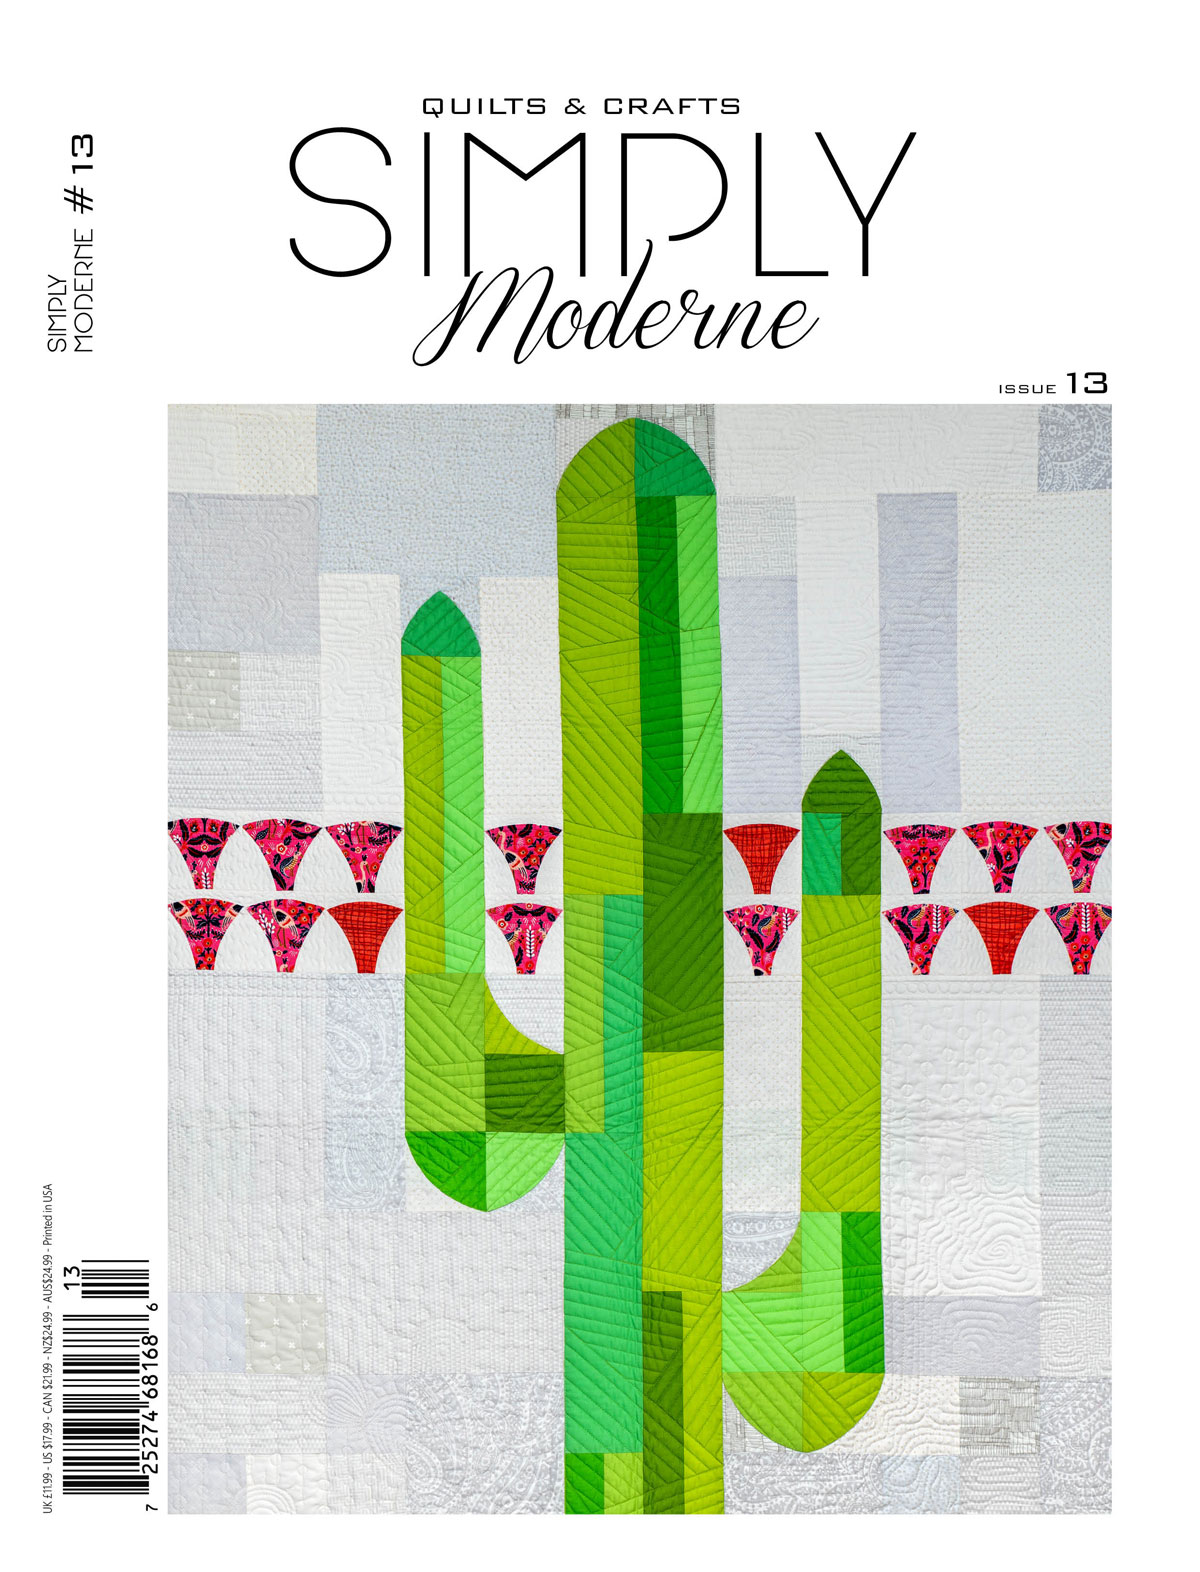 Simply Modern No 13, a Quiltmania magazine filled with 13 modern quilt projects